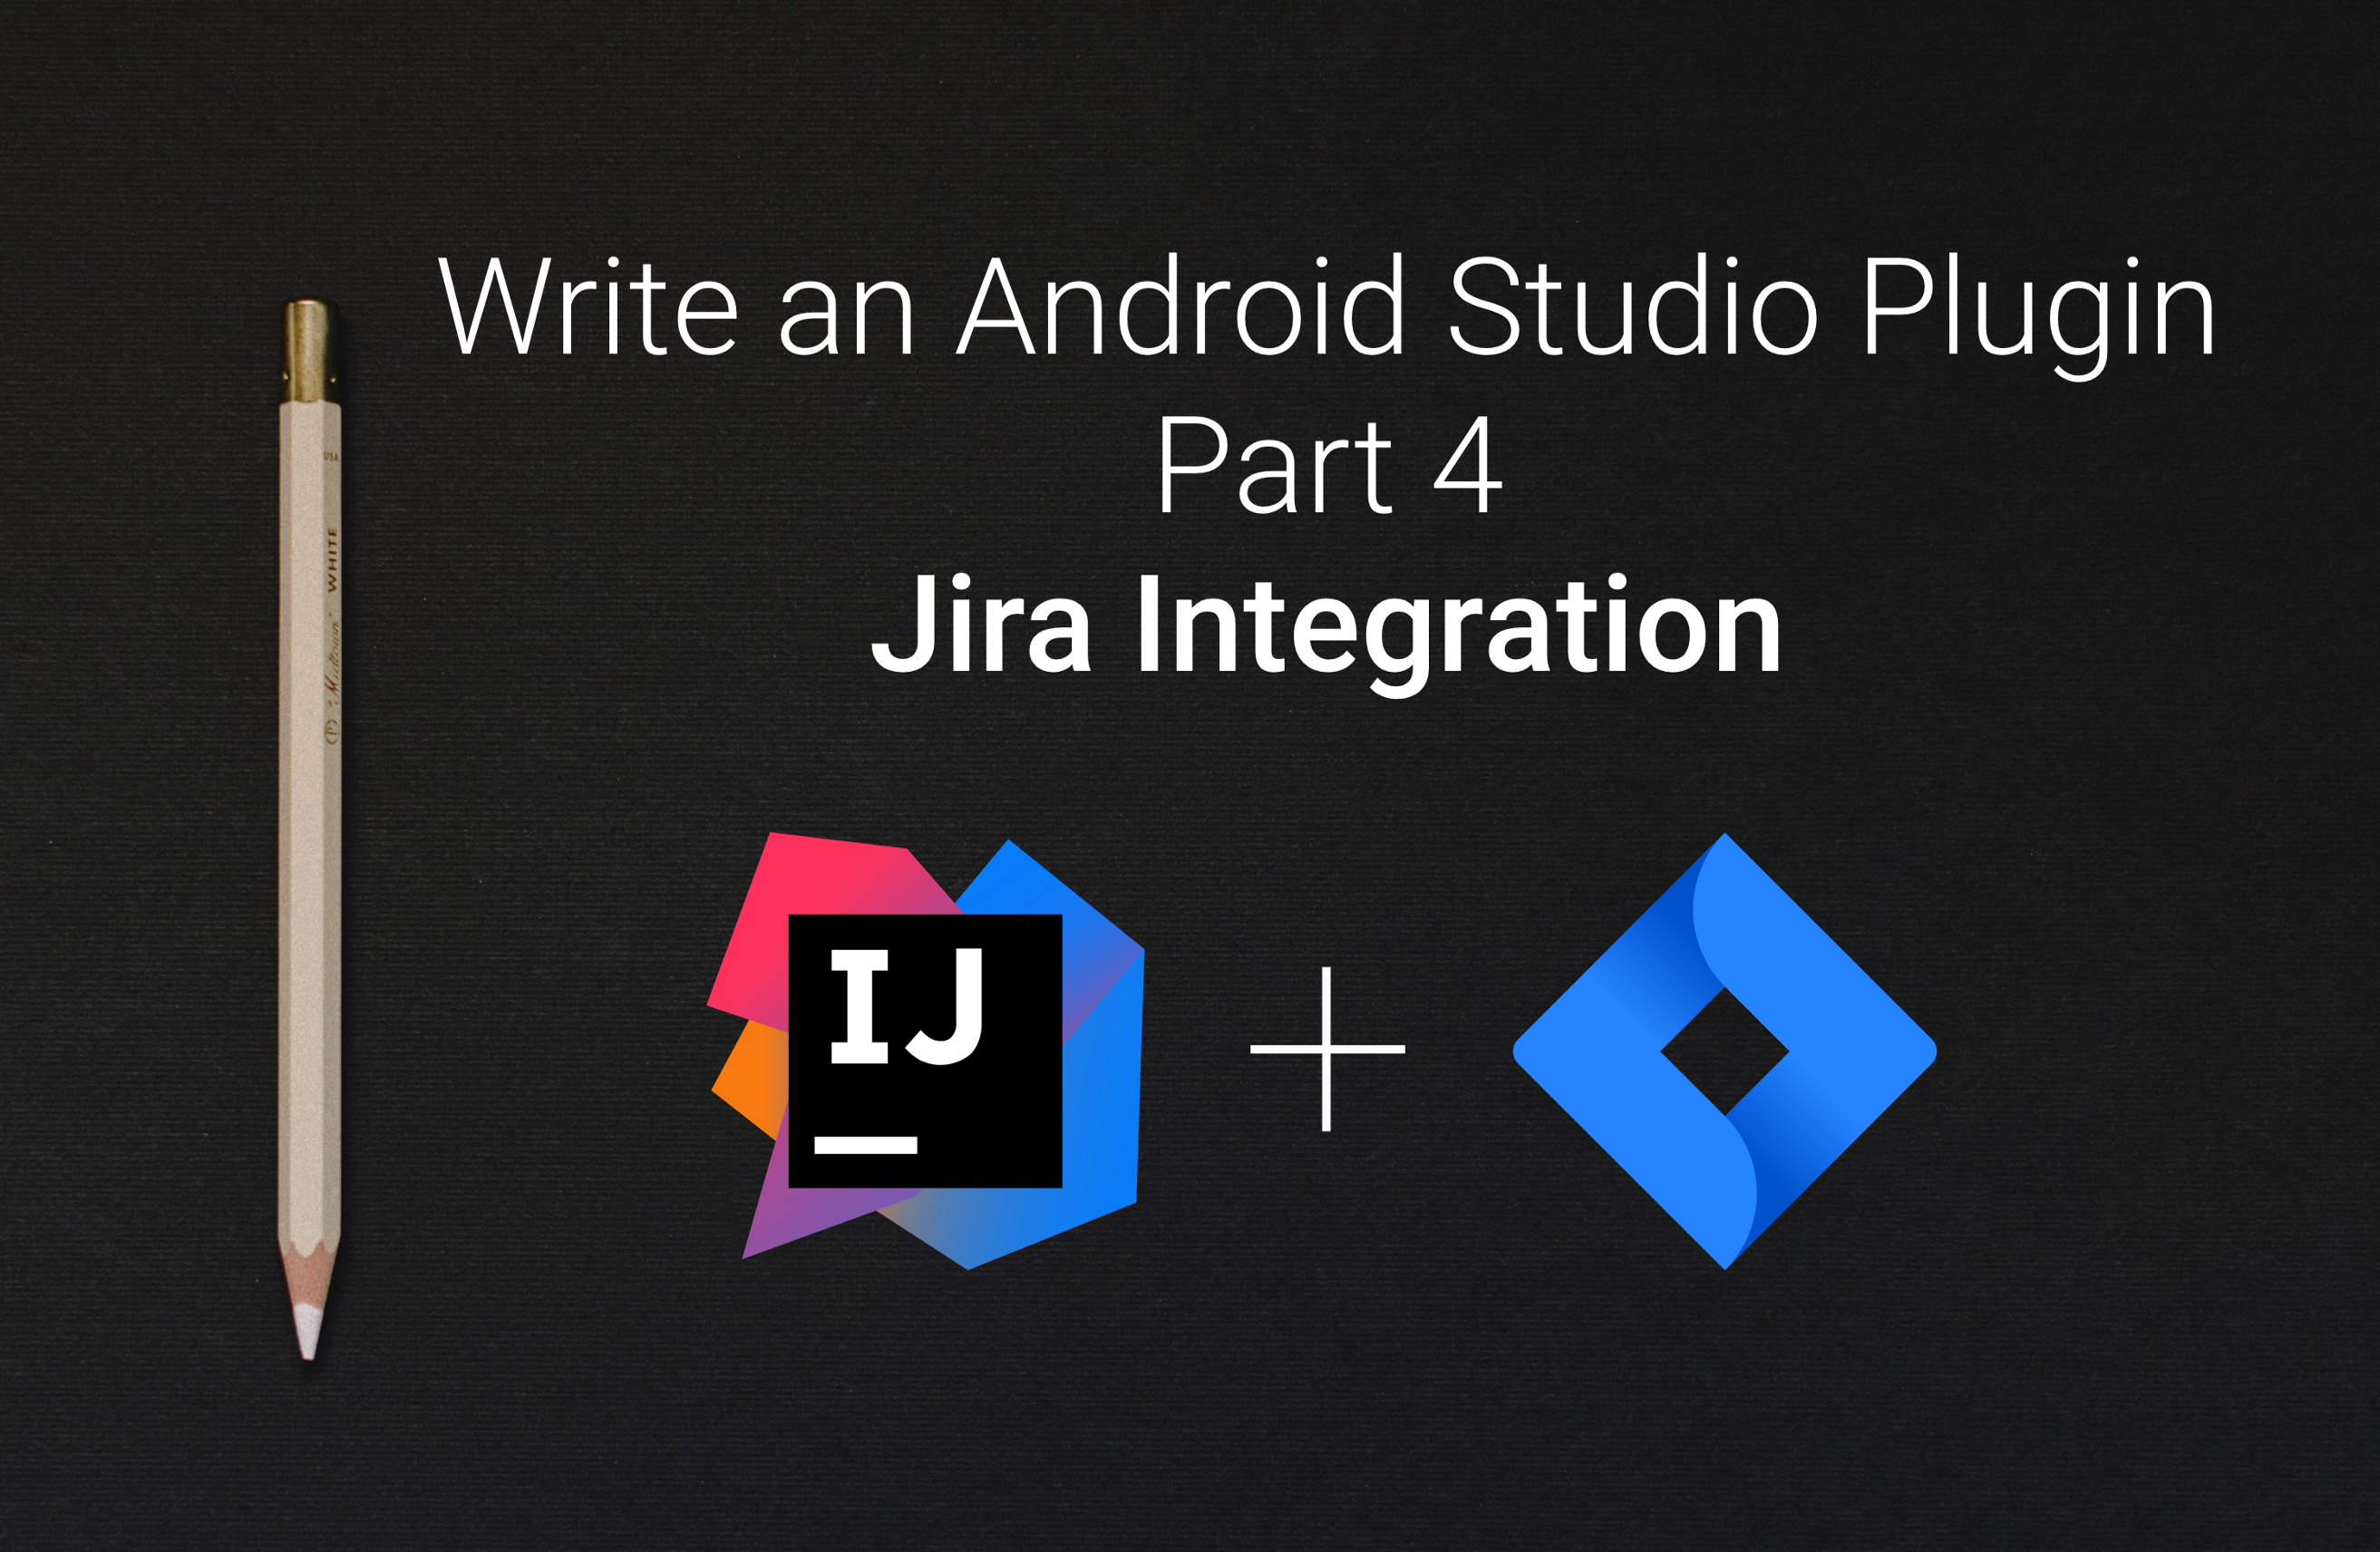 Write an Android Studio Plugin Part 4: Jira Integration